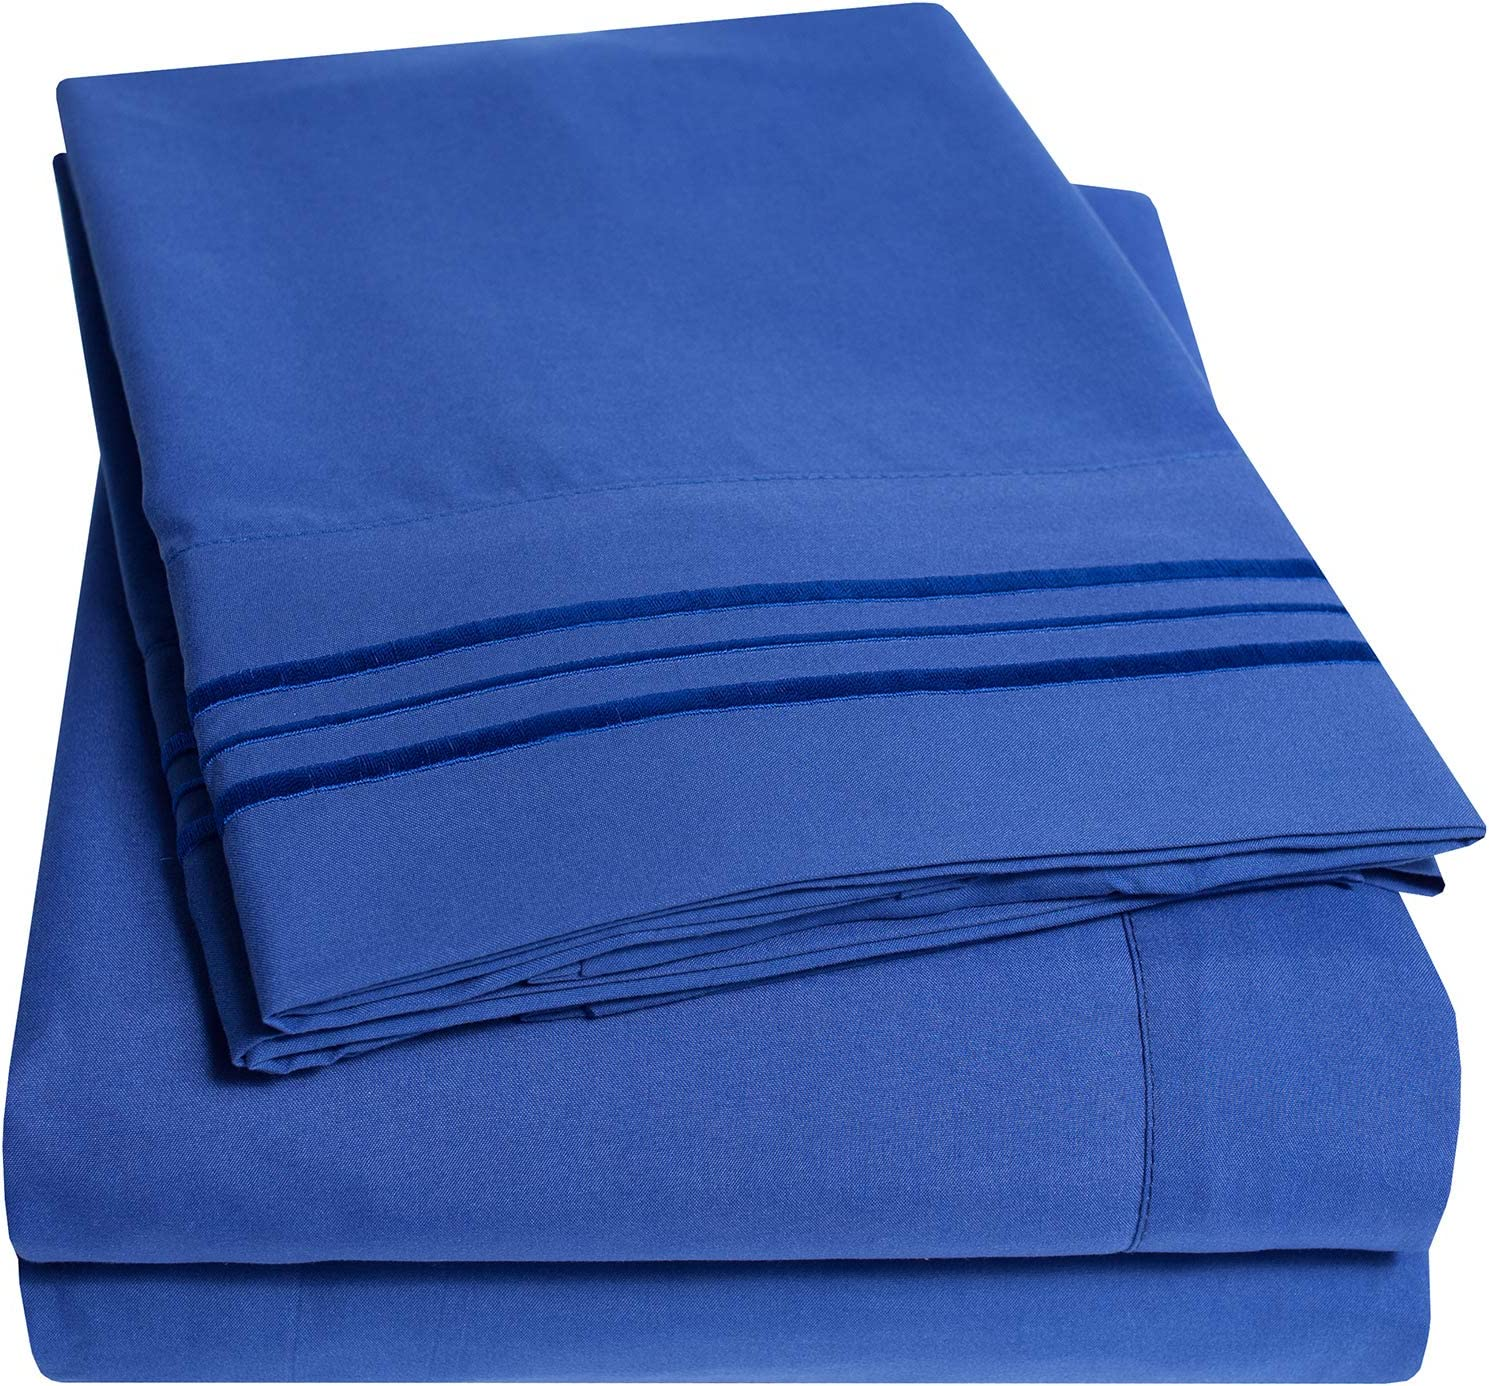 1500 Supreme Collection Bed Sheets Set - Premium Peach Skin Soft Luxury 4 Piece Bed Sheet Set, Since 2012 - Deep Pocket Wrinkle Free Hypoallergenic Bedding - Over 40+ Colors - Full, Royal Blue